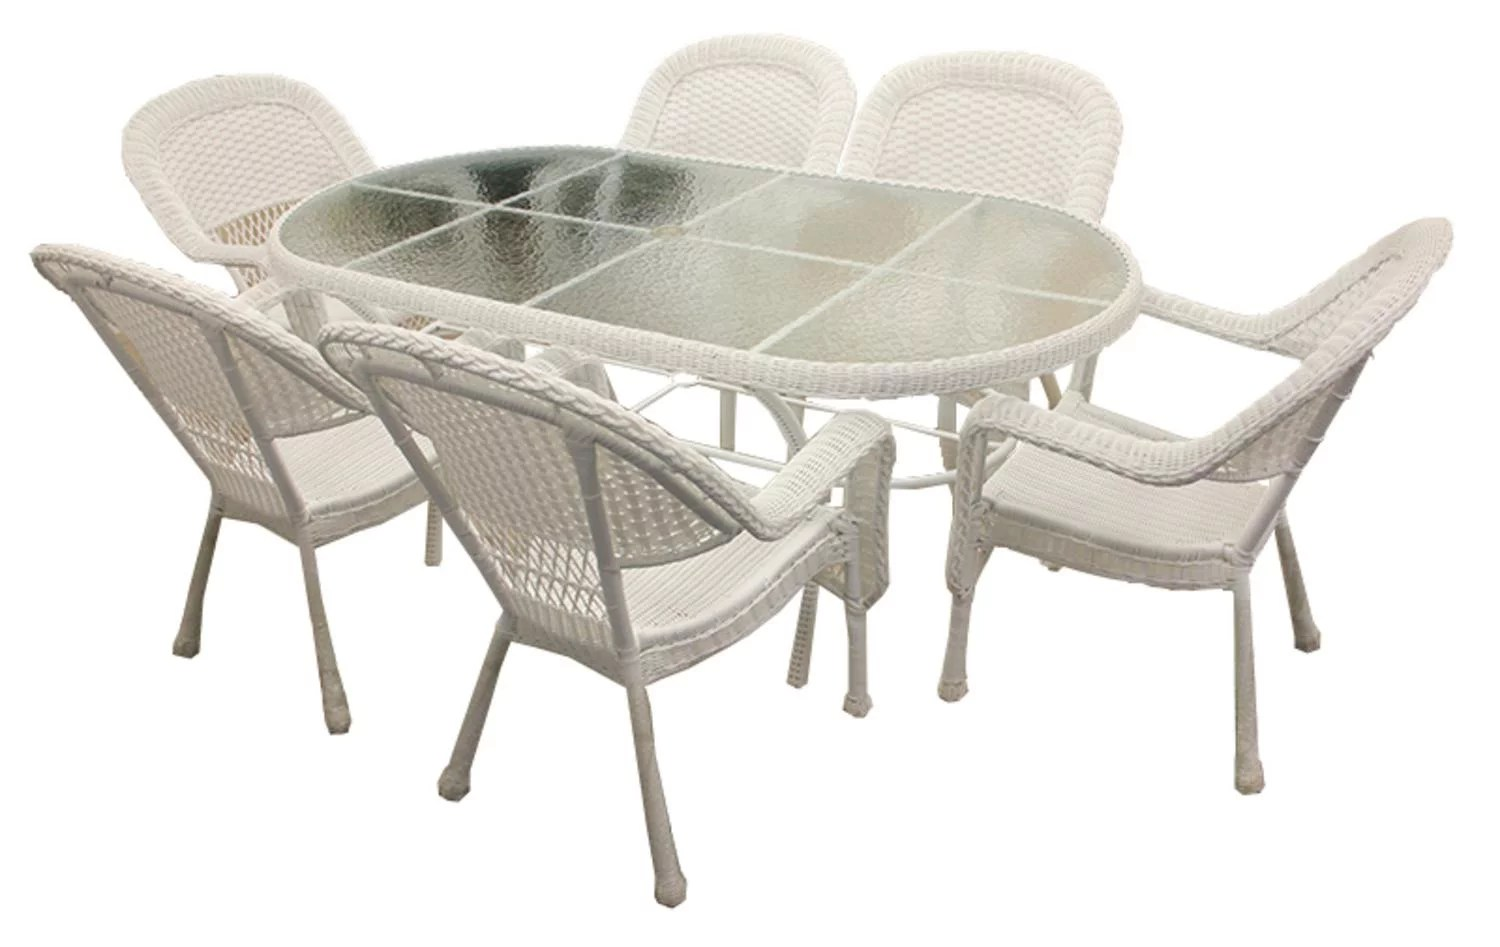 7 piece white resin wicker patio dining set 6 chairs and 1 dining table walmart com